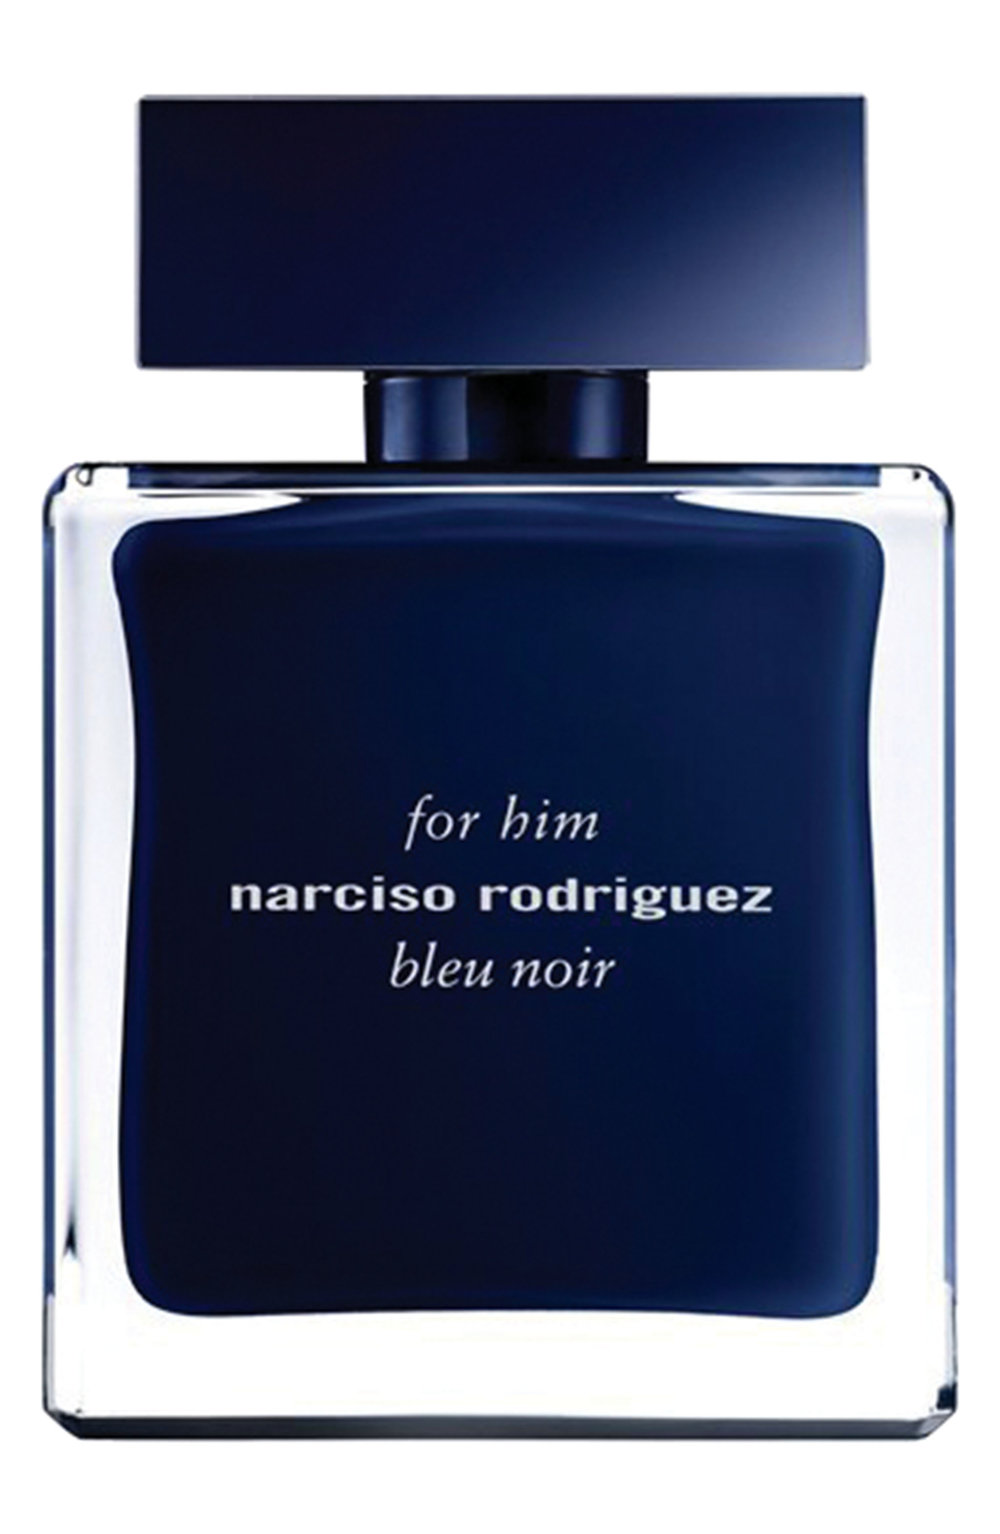 6.For Him Bleu Noir Eau de Toilette, 100 ml, by Narciso Rodriguez $89,  nordstrom.com